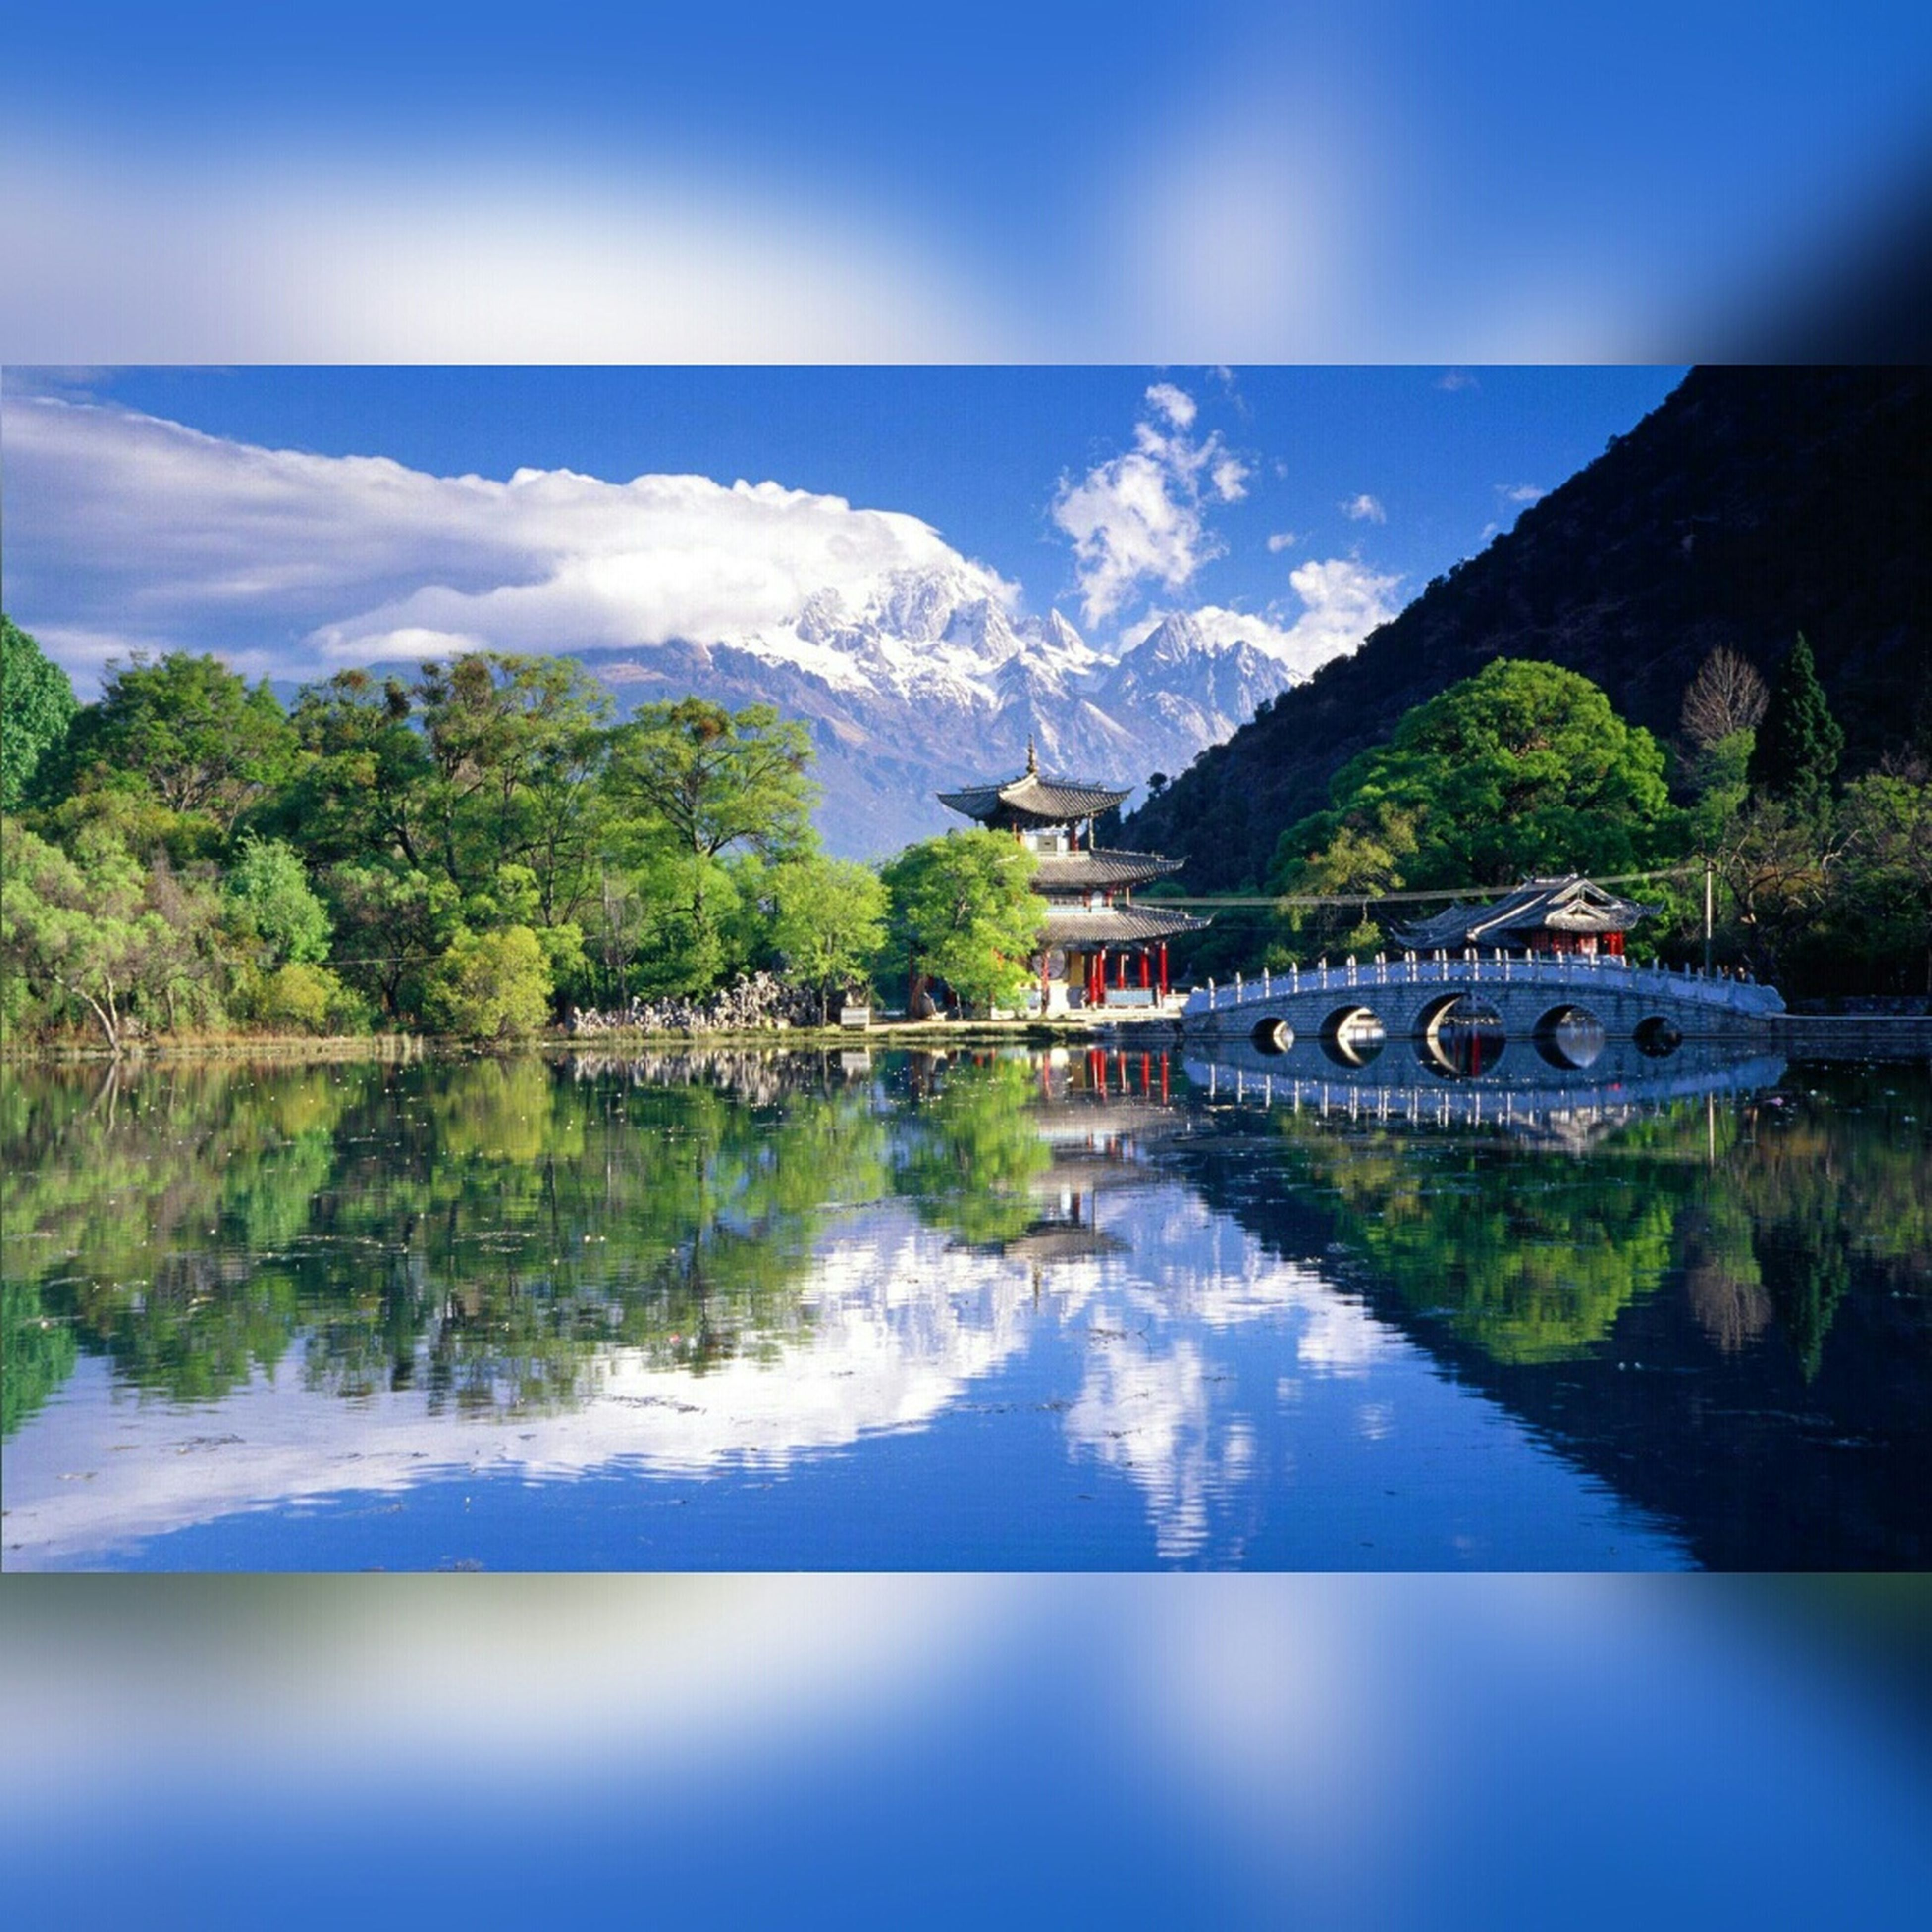 water, mountain, sky, reflection, scenics, tranquil scene, beauty in nature, tranquility, nature, blue, lake, waterfront, tree, transportation, cloud - sky, landscape, cloud, river, day, idyllic